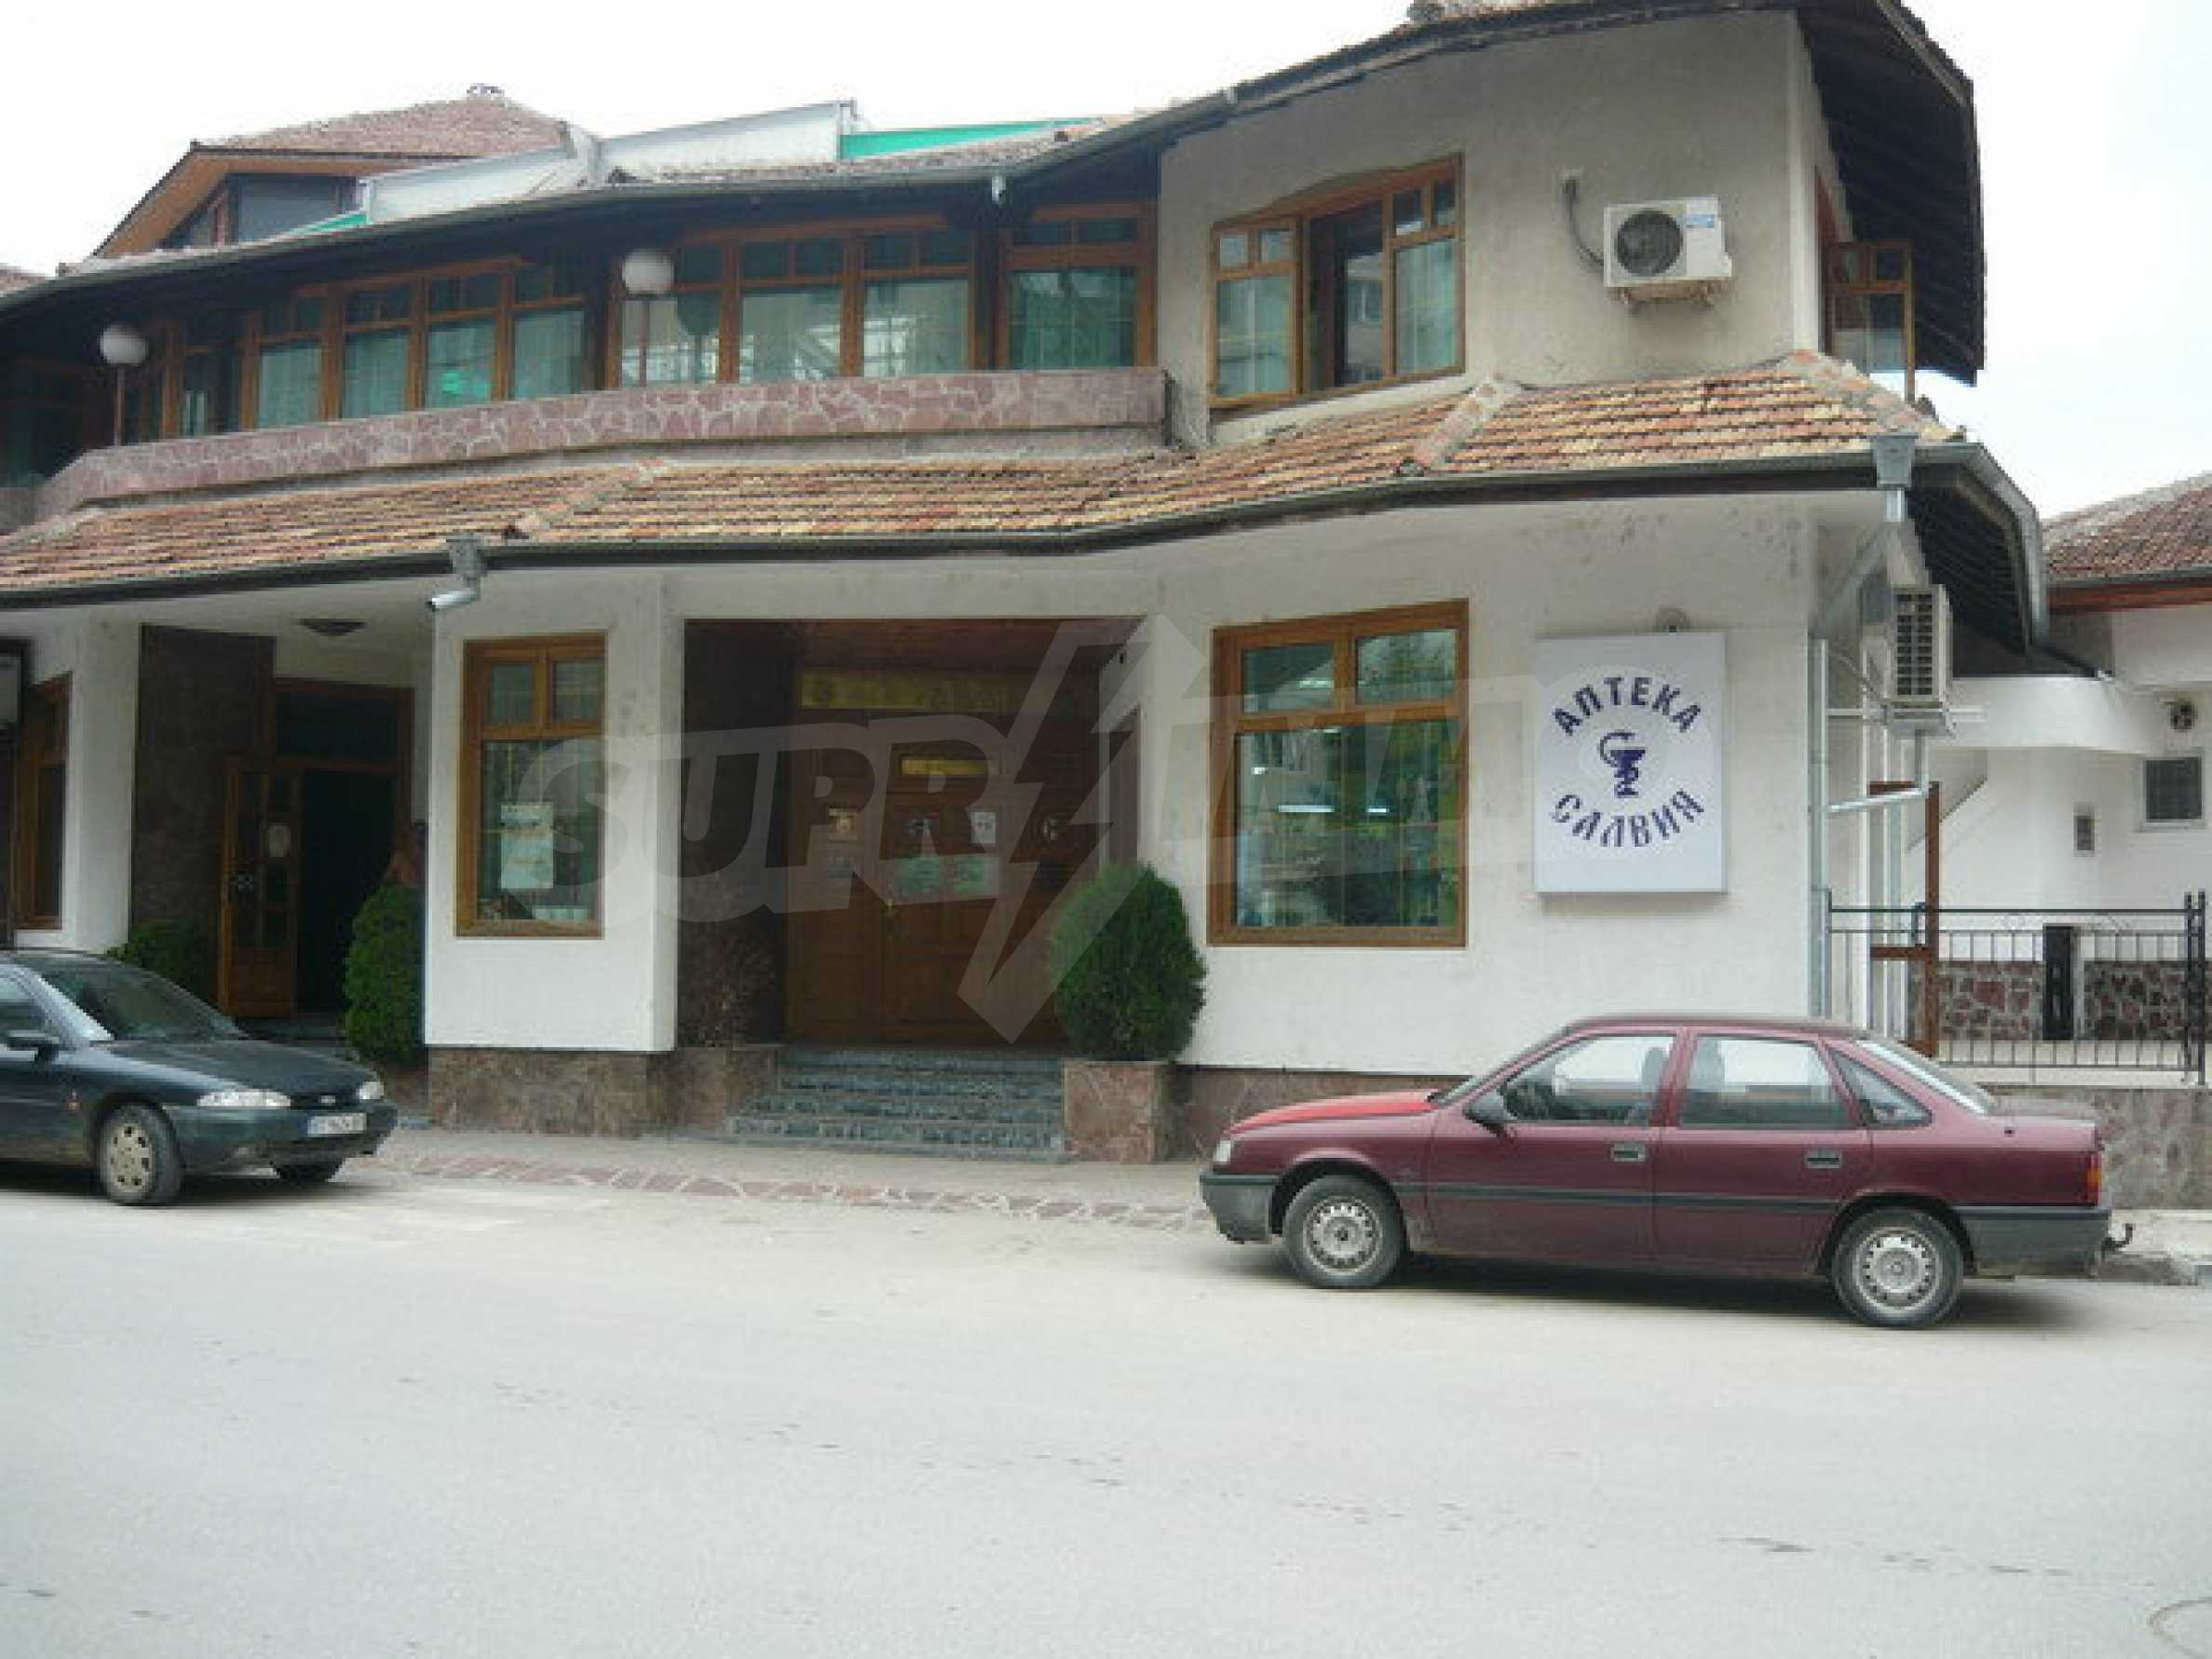 Commercial property on 3 levels for sale in Veliko Tarnovo  49